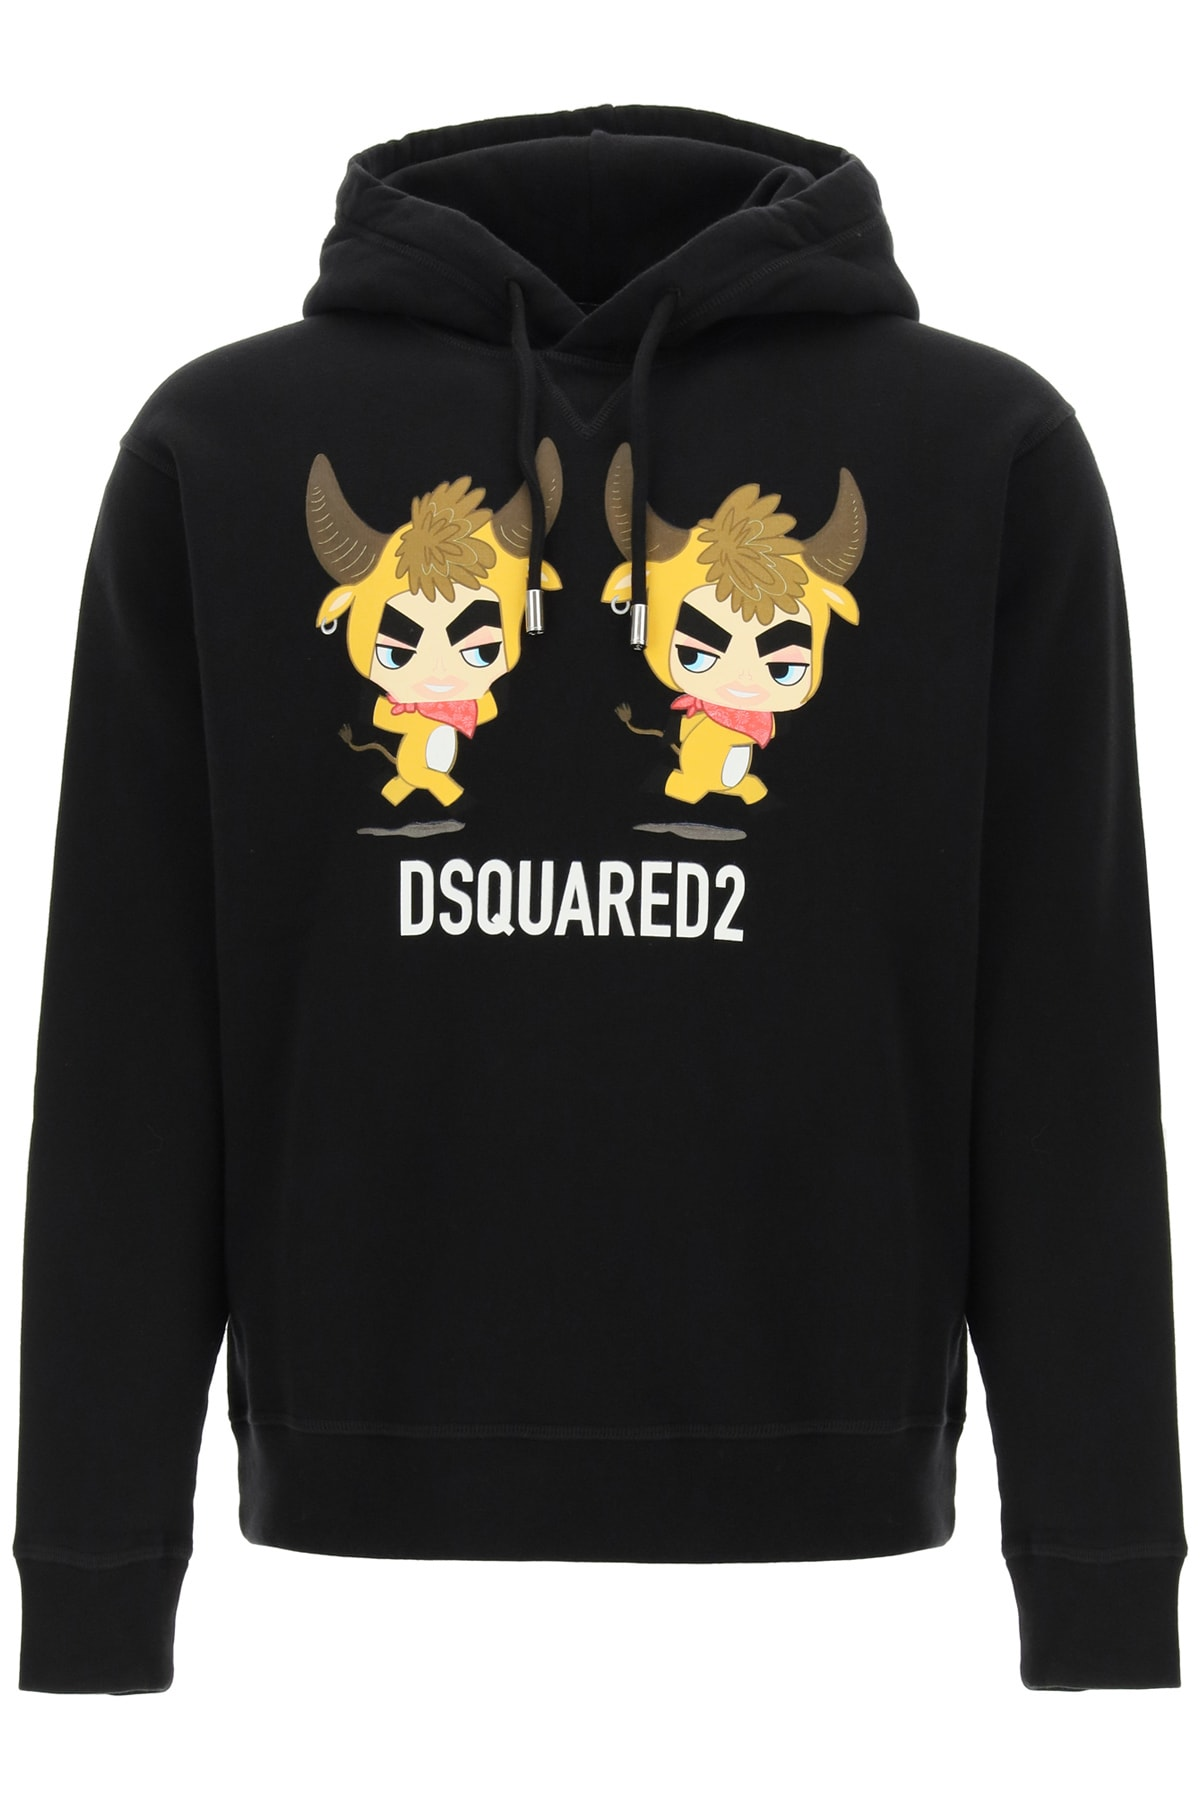 DSQUARED2 YEAR OF THE OX PRINT HOODIE